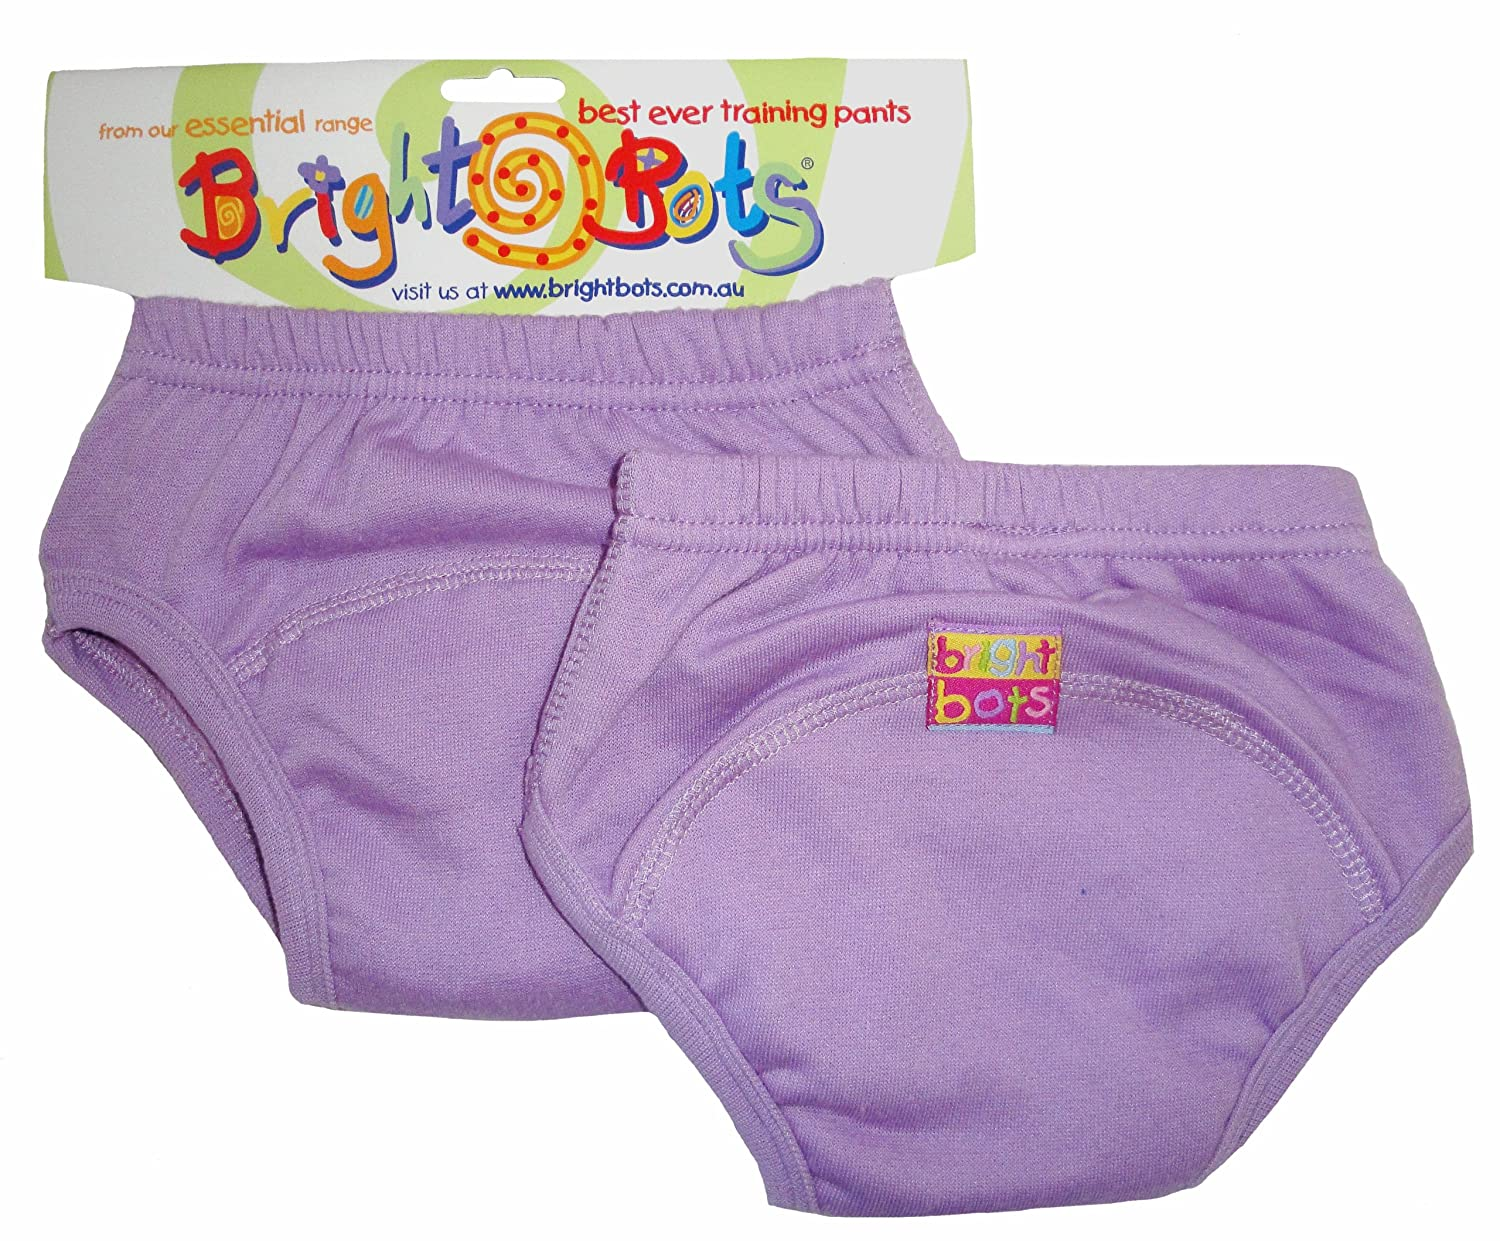 Bright Bots Potty Training Pants (Twin Pack, Mauve, Medium, 18 - 24 months) 2PSETRA1-2LM